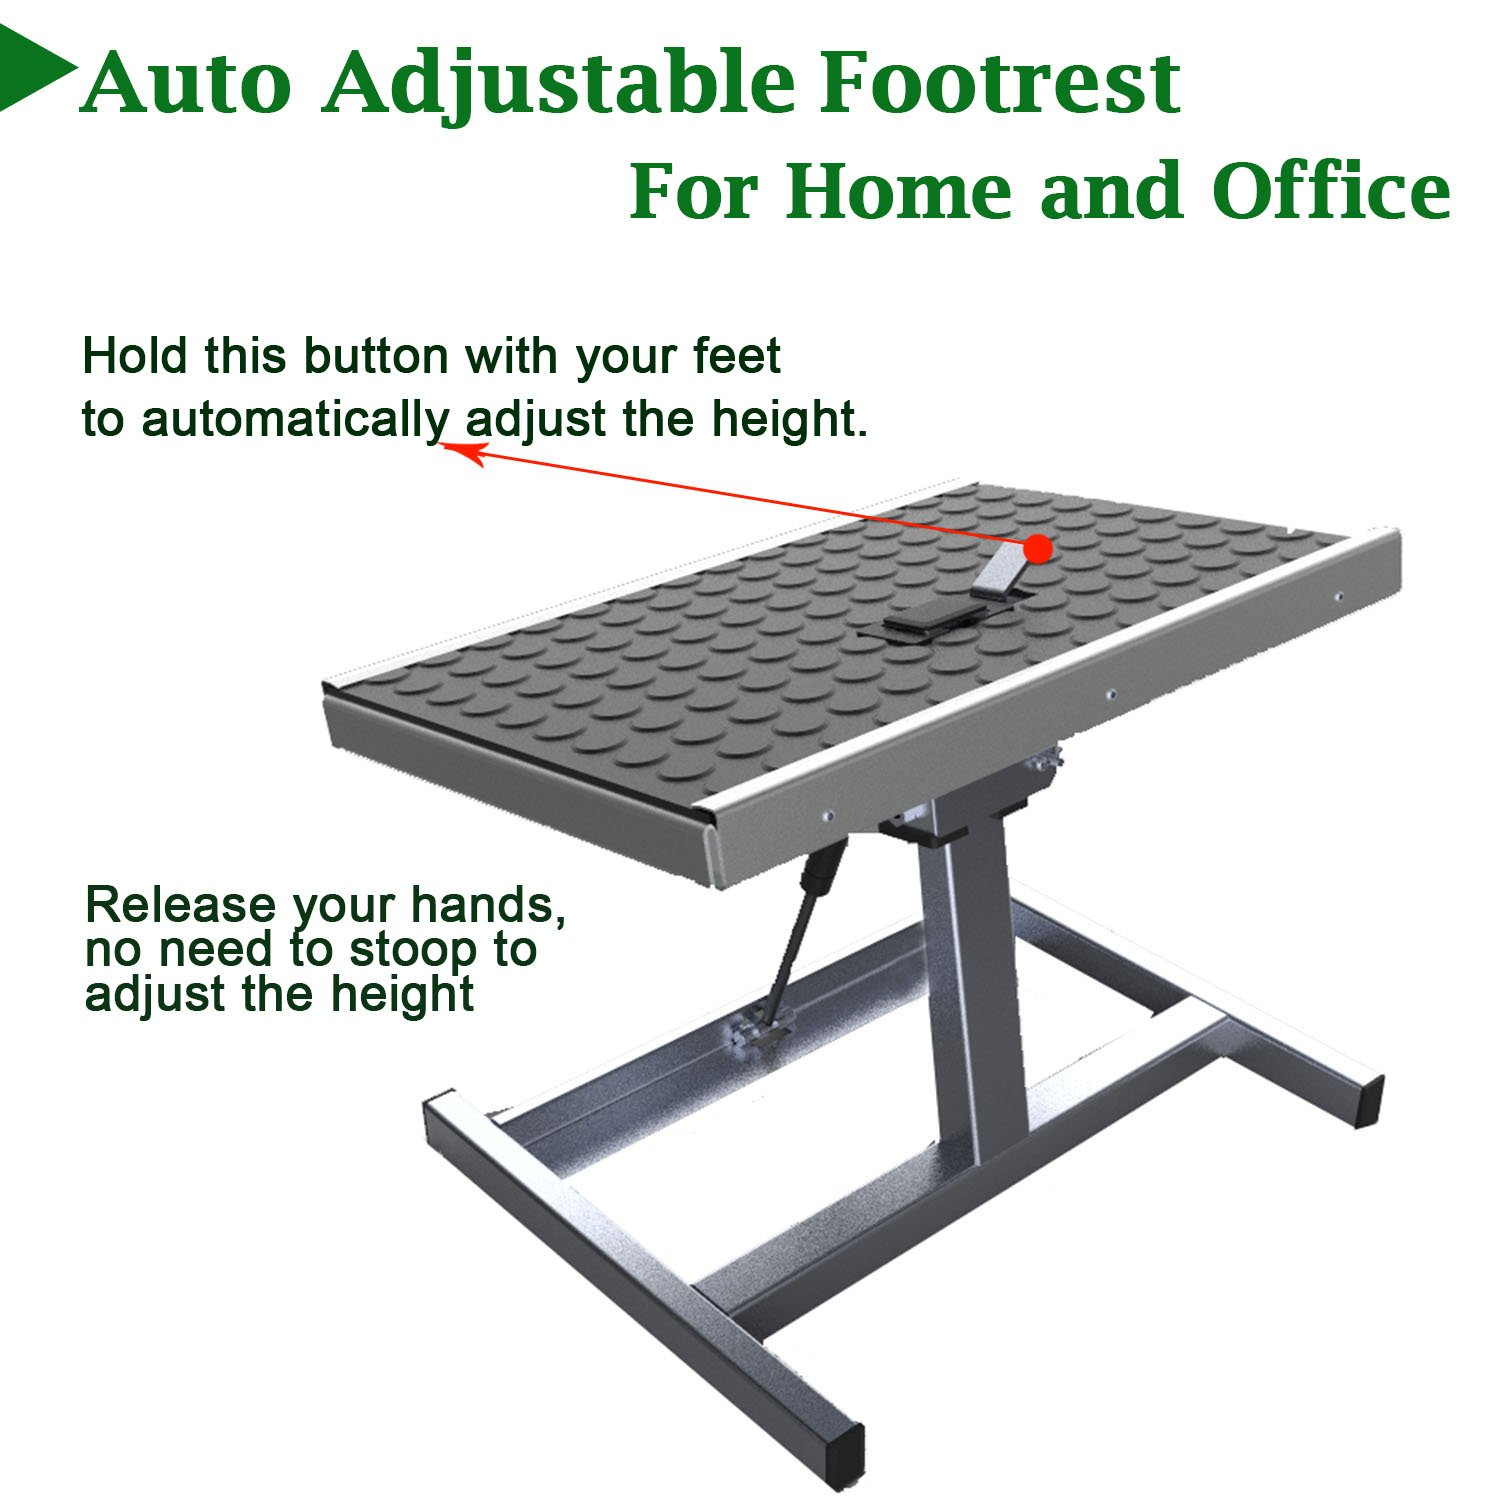 Annstory Auto Adjustable Footrest,Ergonomic Comfortable Height-Adjustable Footstool for Home and Office (Heavy Frame) by Annstory (Image #2)